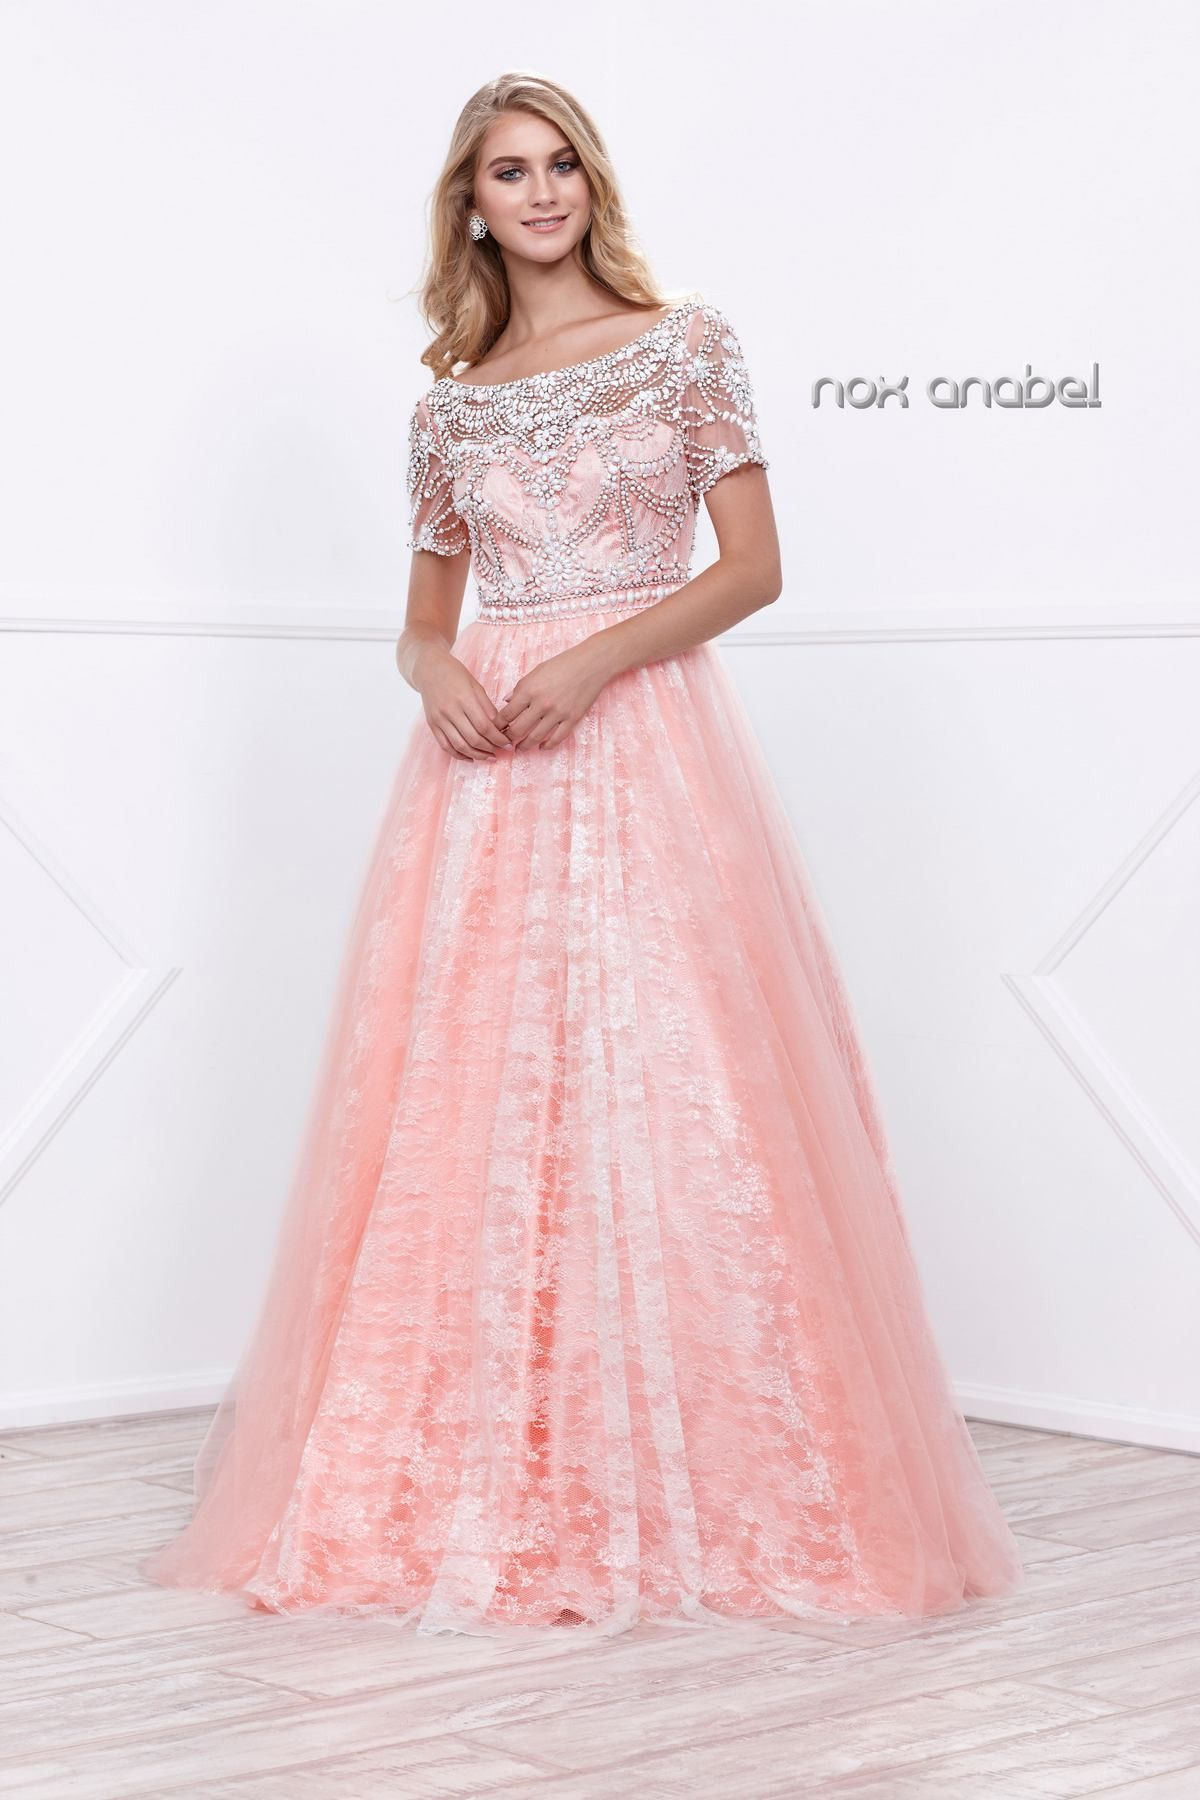 Pink Short-Sleeve Beaded Illusion Dress by Nox Anabel 8300